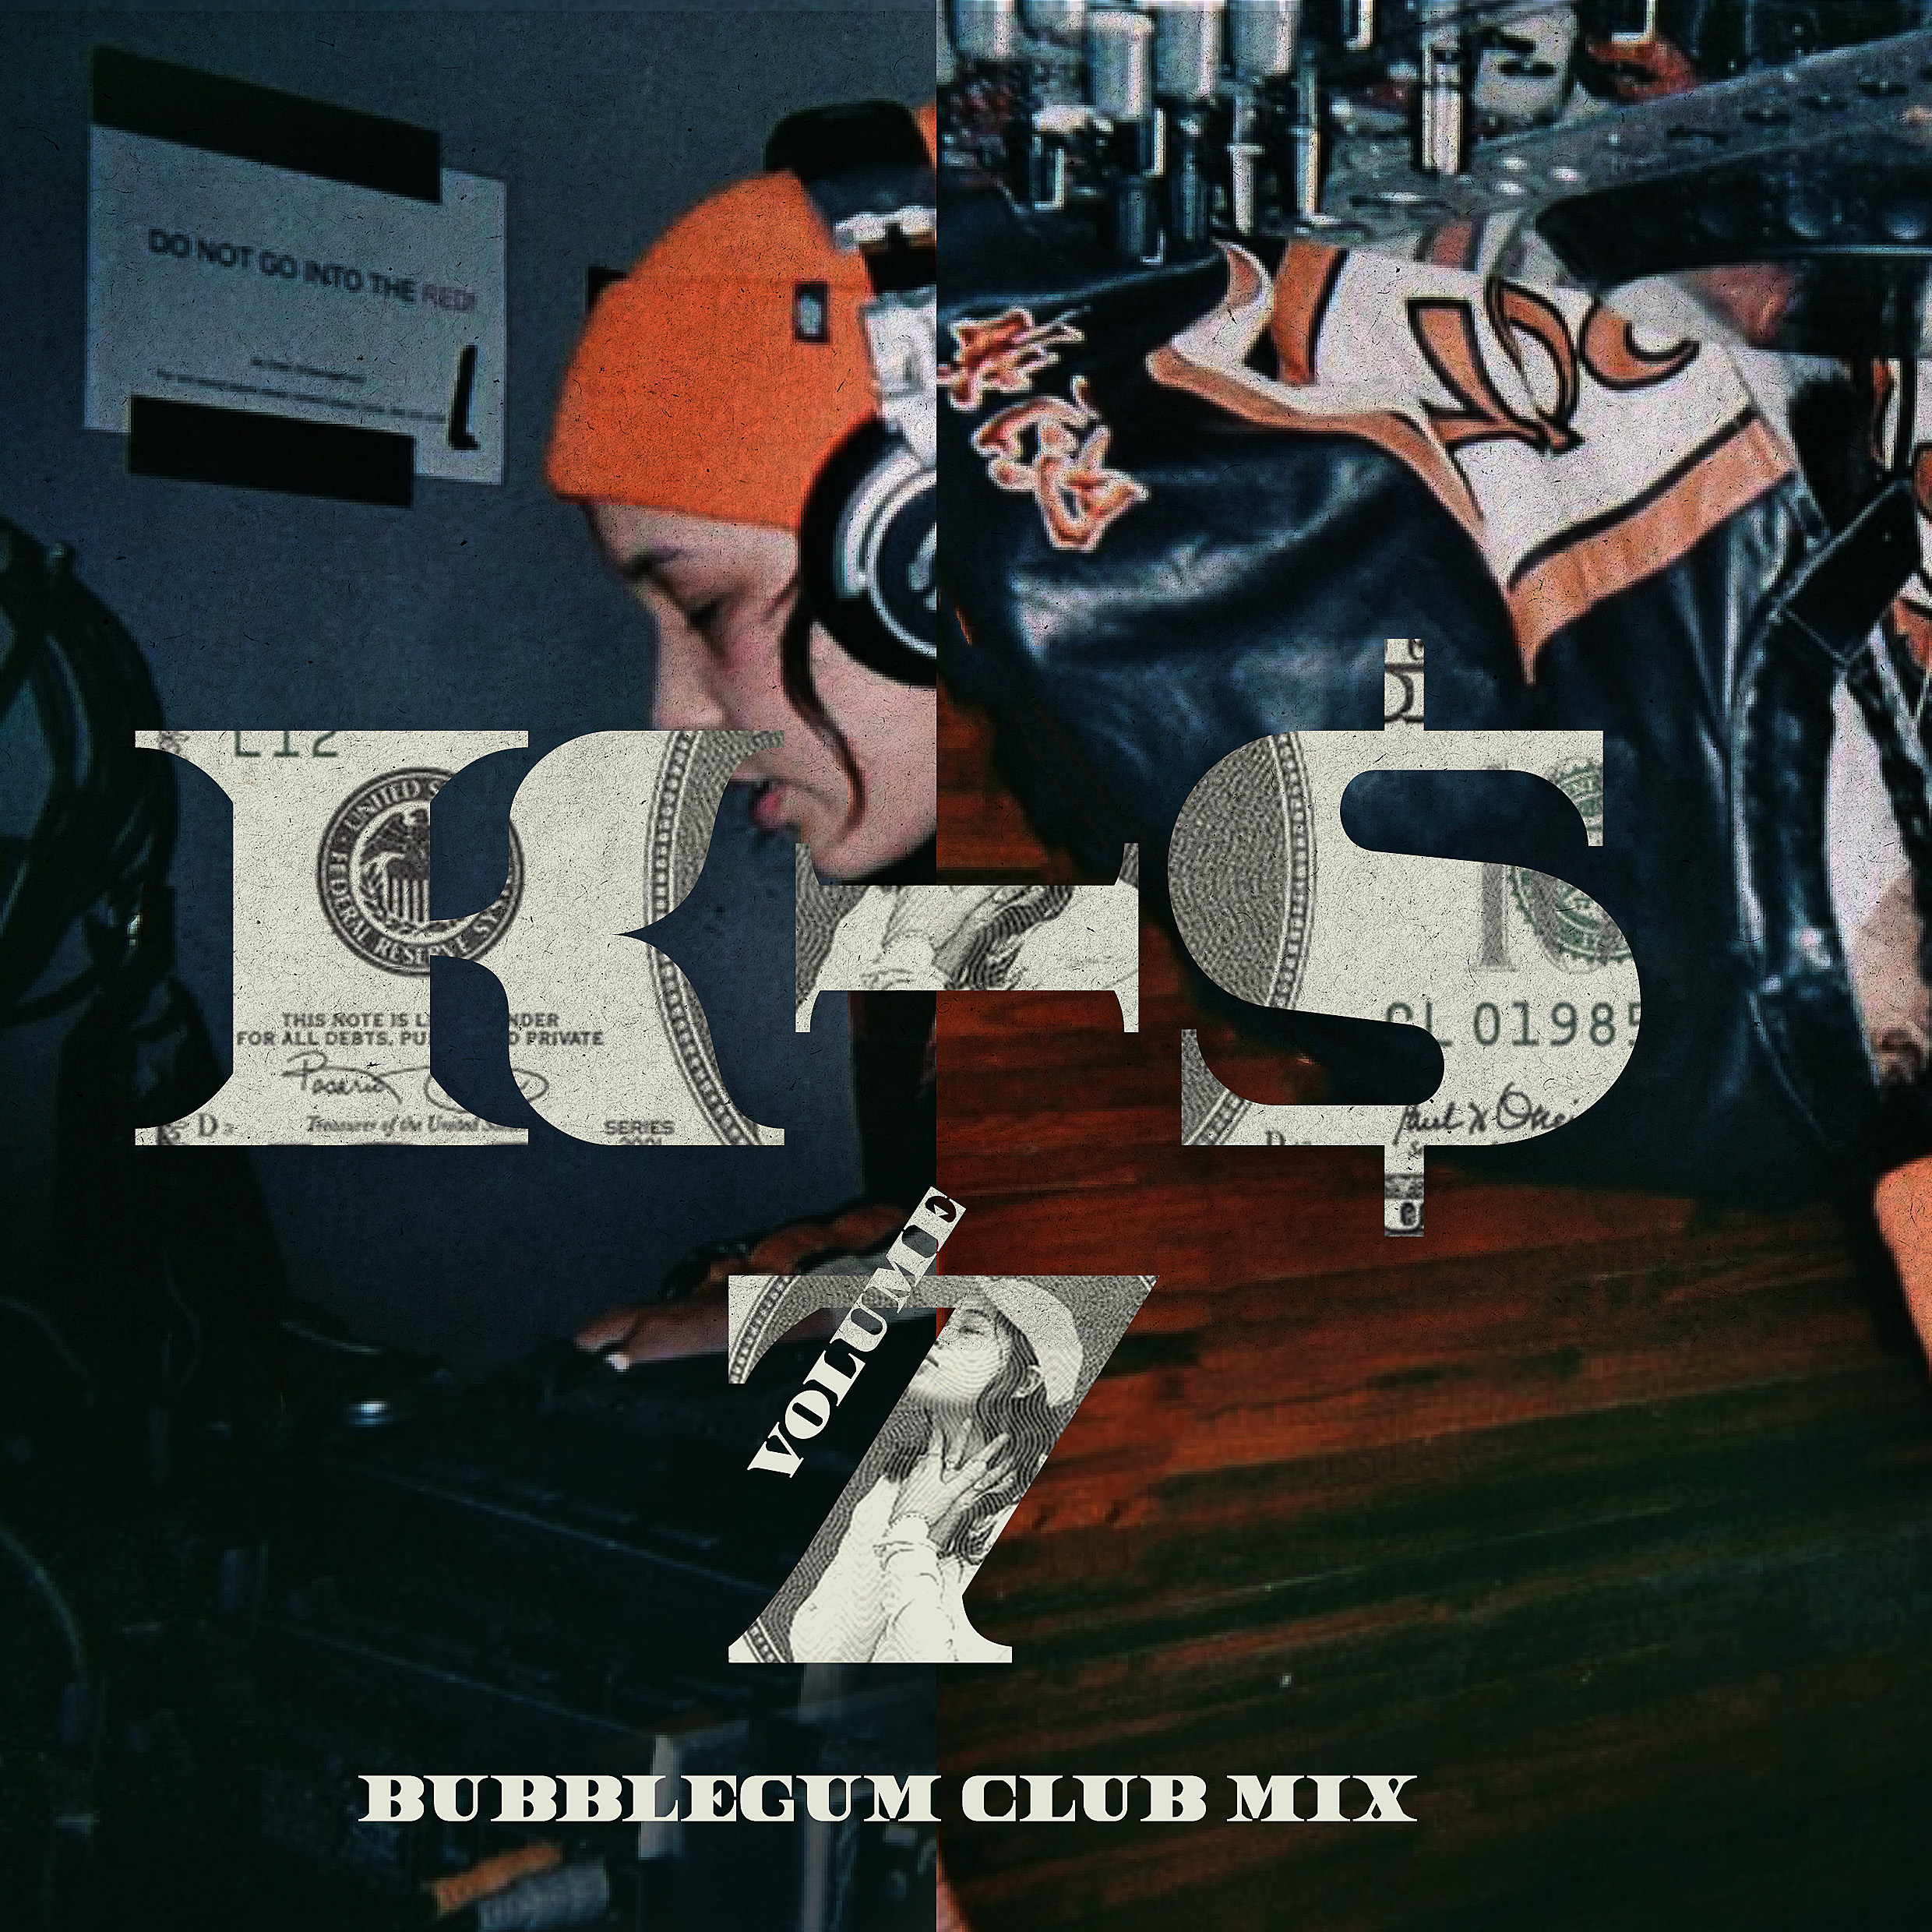 Bubblegum Club mix Vol 7 by K-$ - Artwork by - Lex Trickett